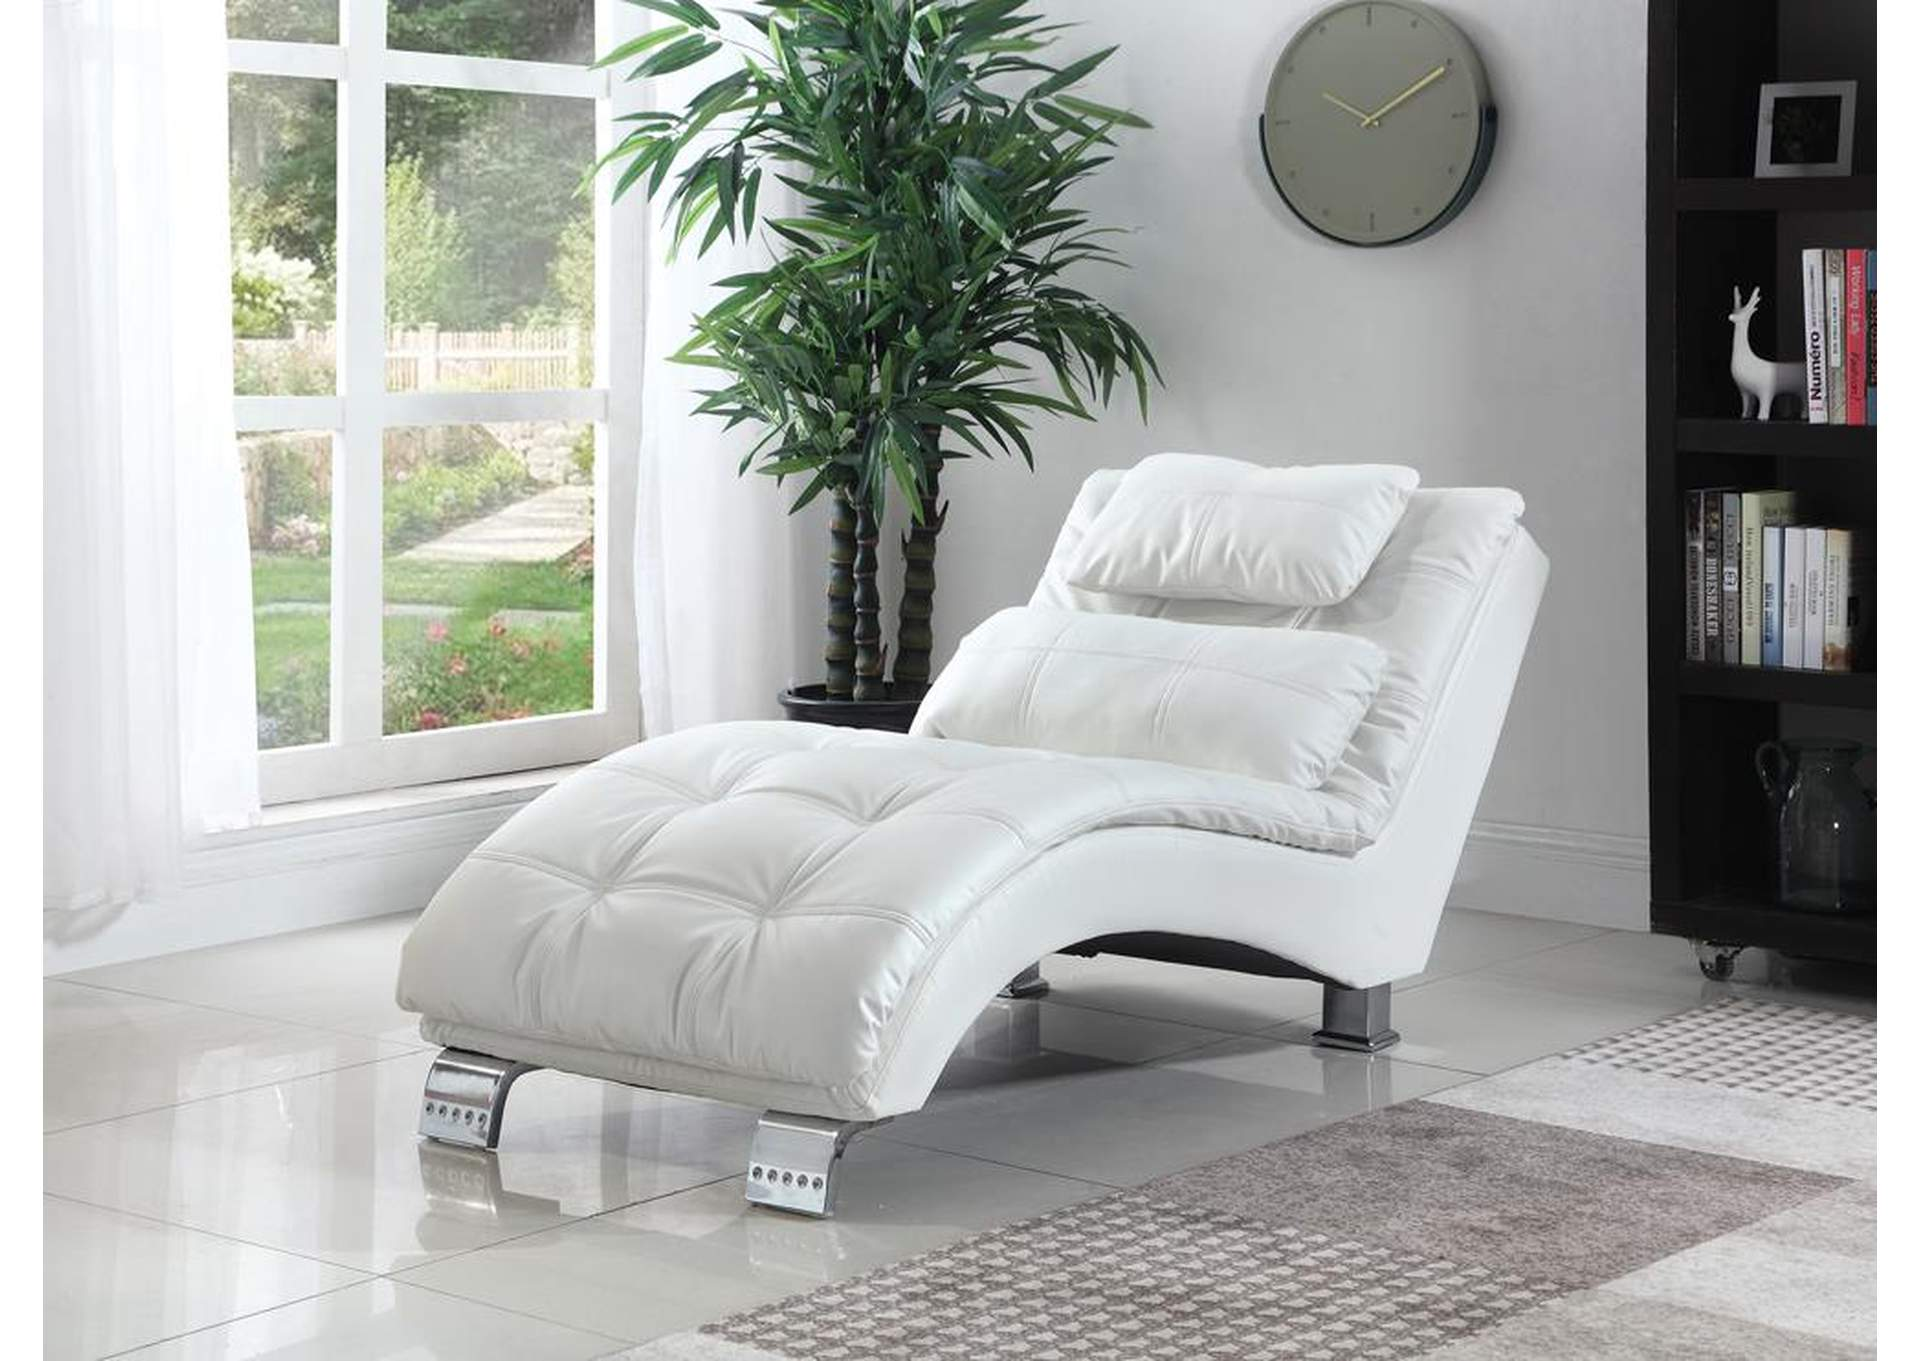 White Chaise,ABF Coaster Furniture